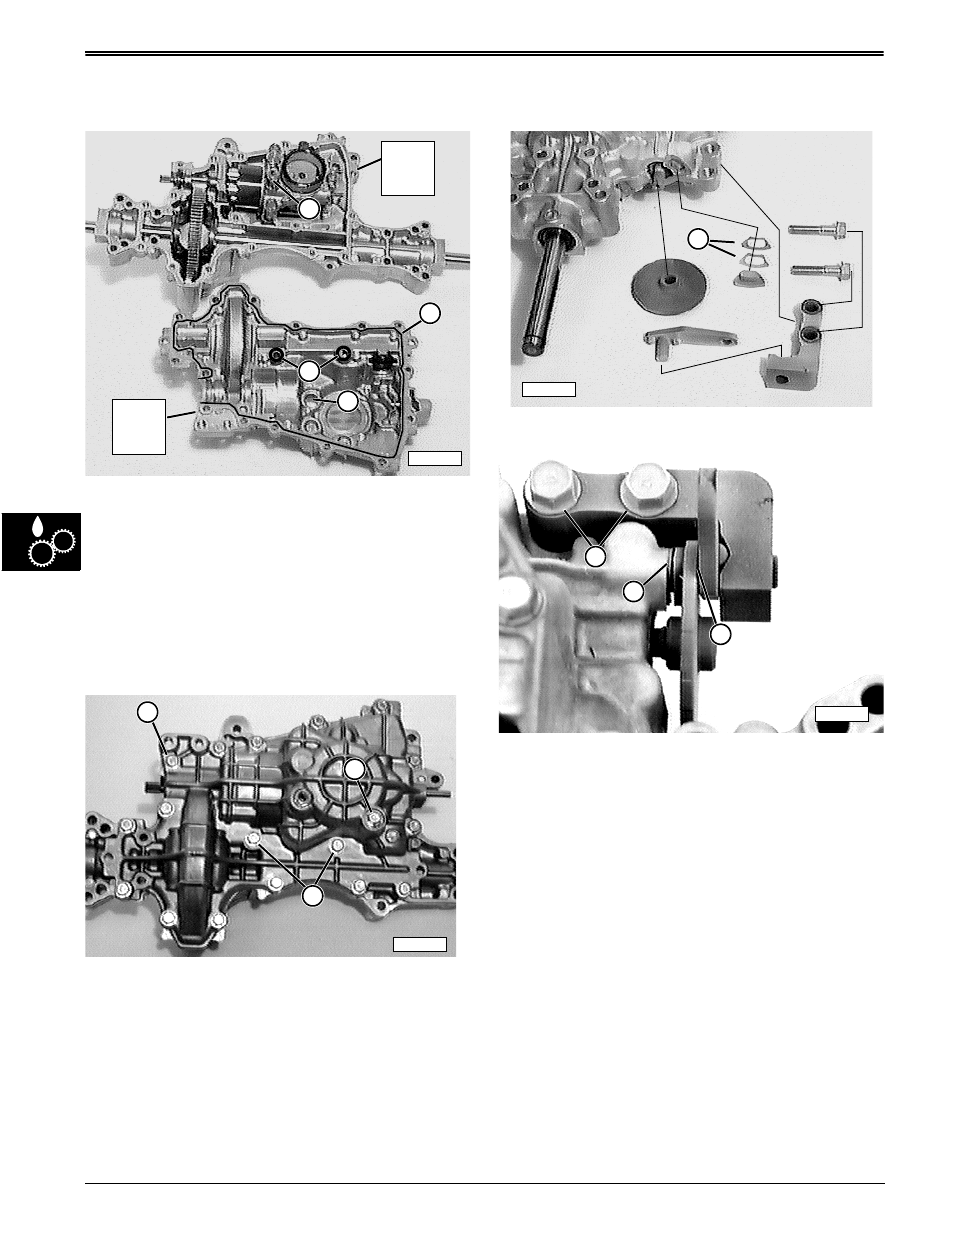 Transaxle case halves— assembly, Brake assembly